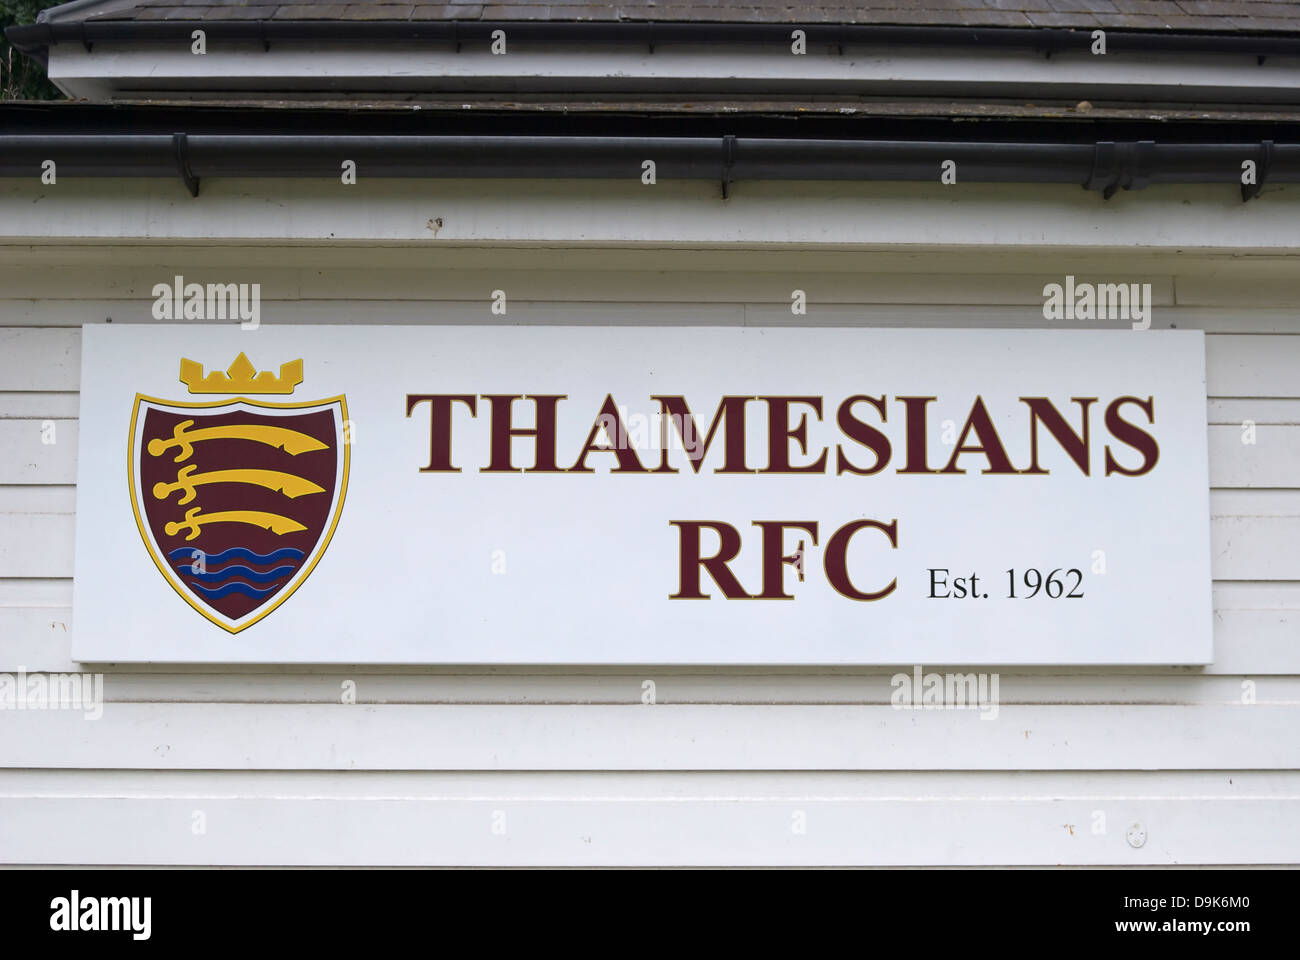 sign with crest for thamesians rfc, an amateur rugby club,  twickenham, middlesex, england - Stock Image